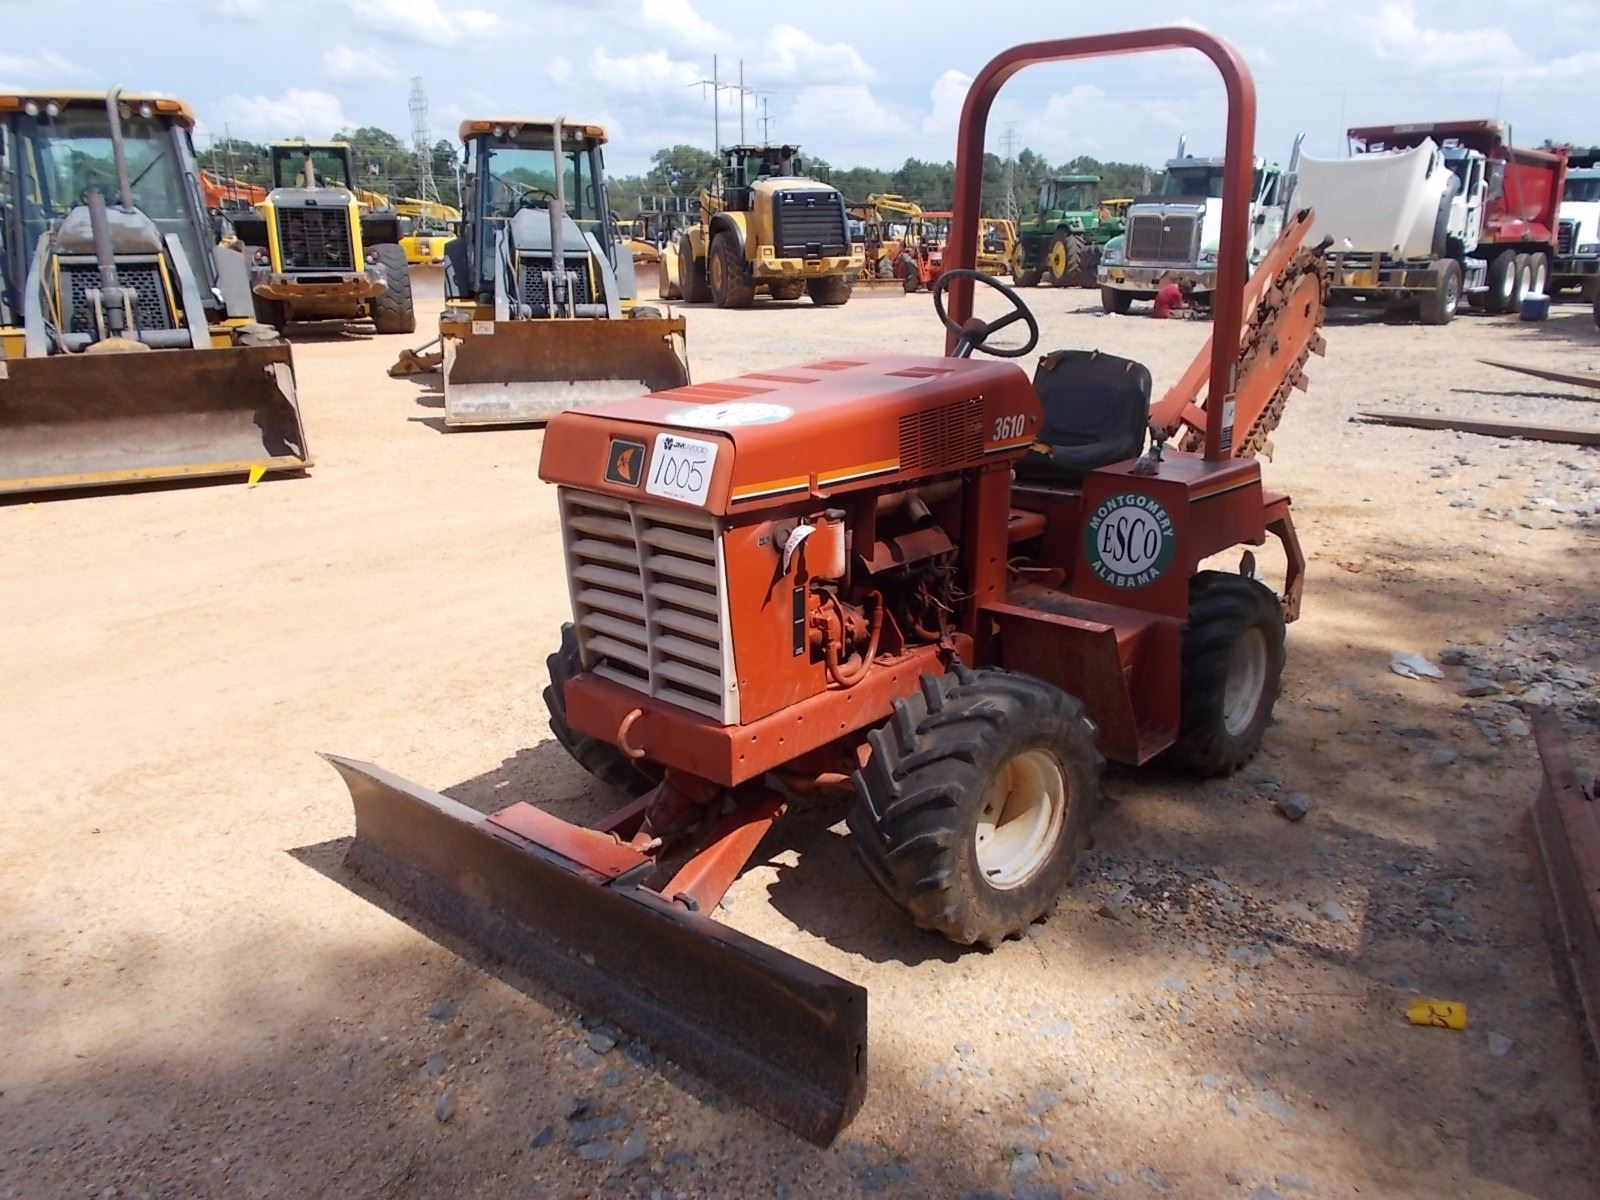 Image 1 : DITCH WITCH 3610 TRENCHER, VIN/SN:3N0521 - TRENCHER ATTACH ...